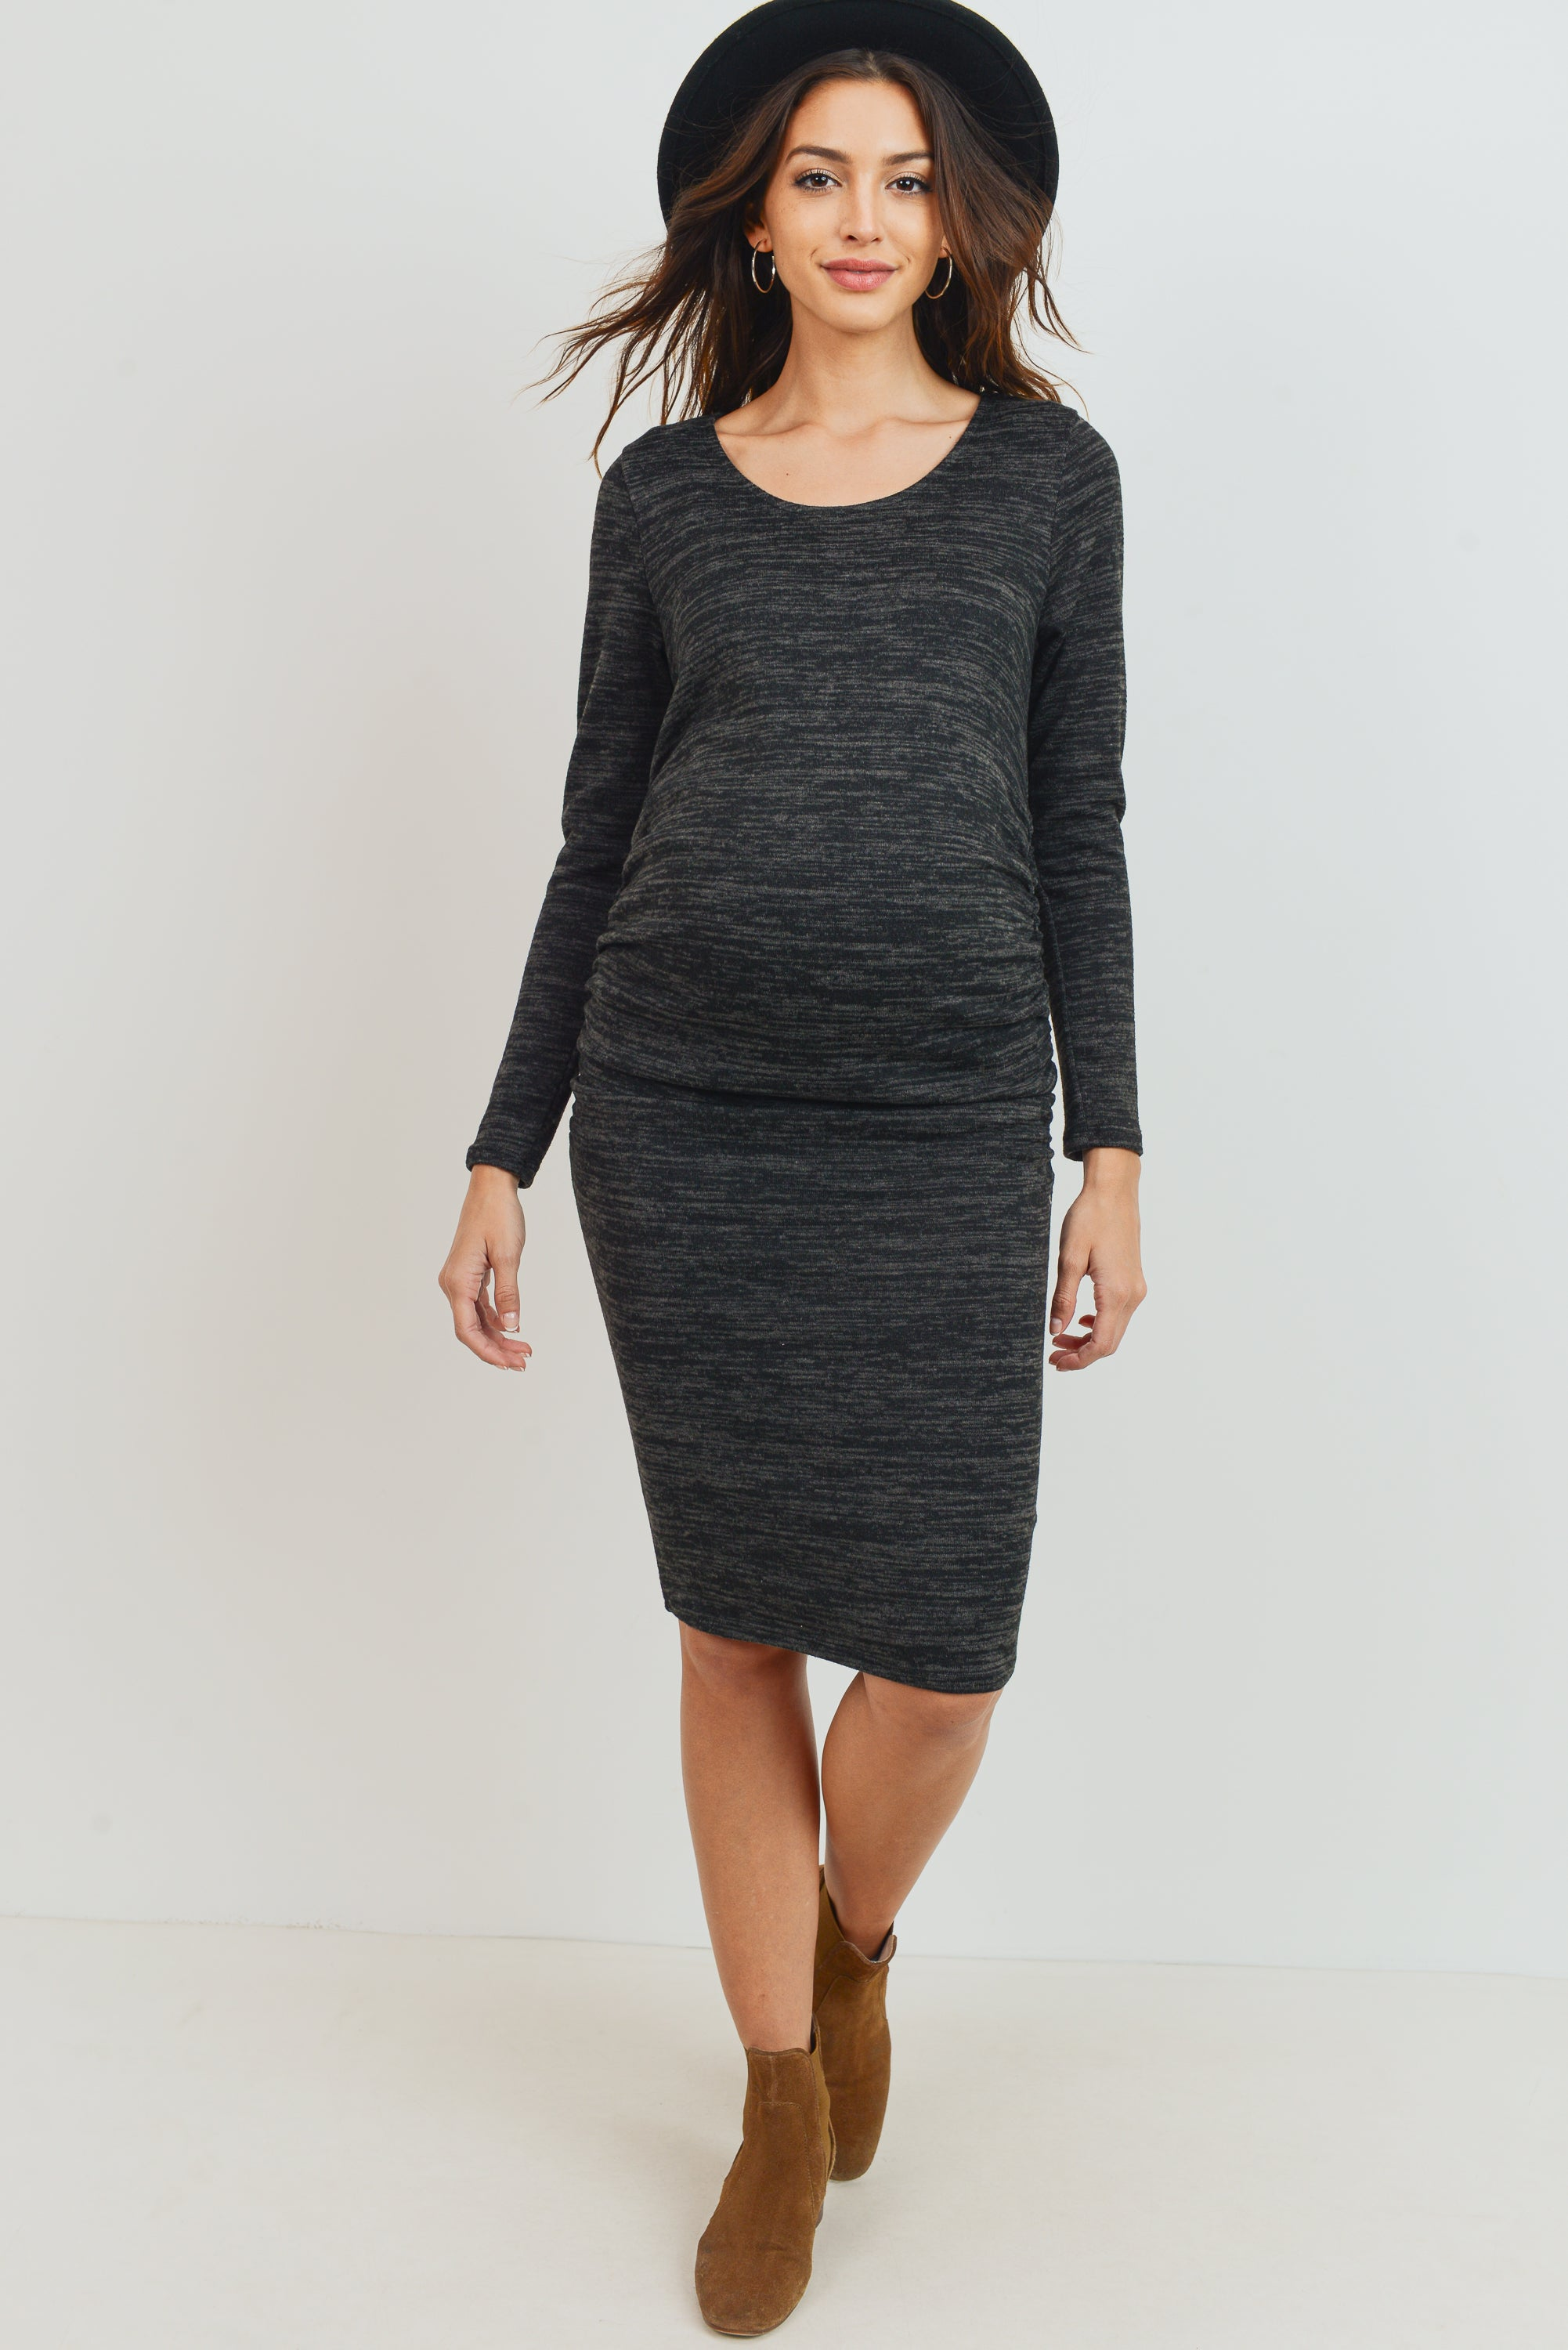 KNIT LONG SLEEVE ROUND NECK MATERNITY DRESS